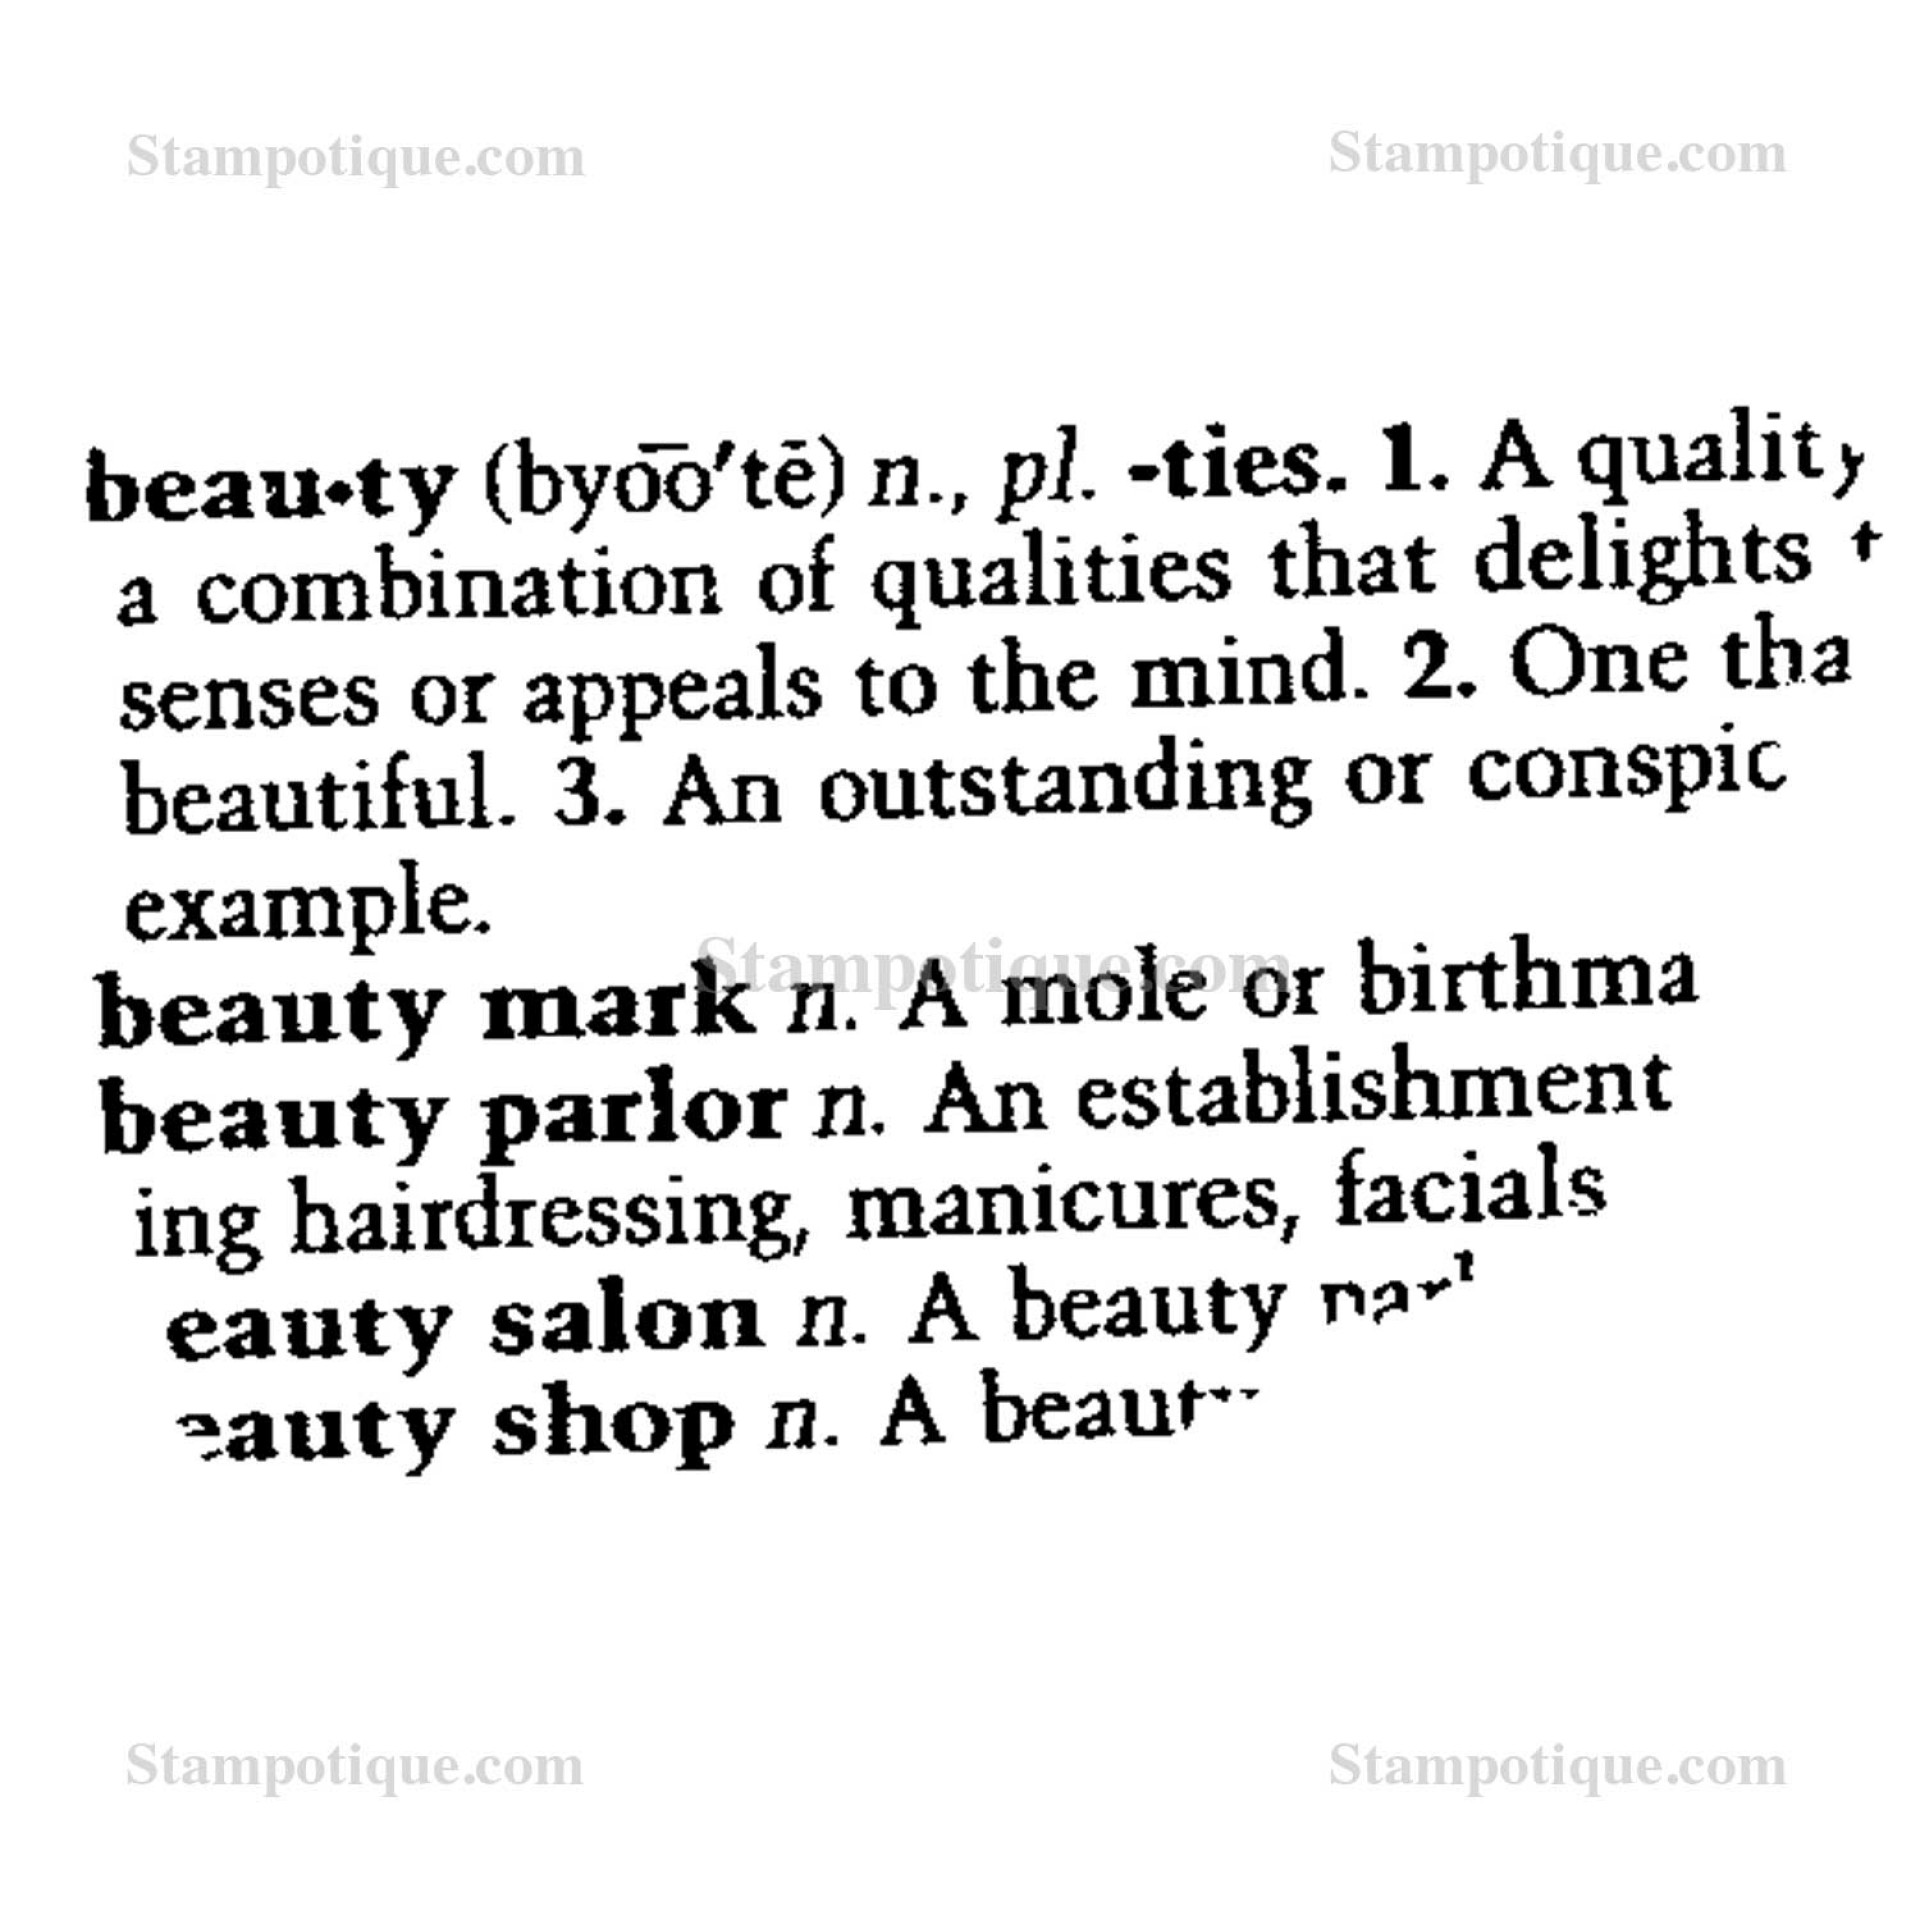 001 7070p Beauty Definition Essay Rare Conclusion Extended 1920